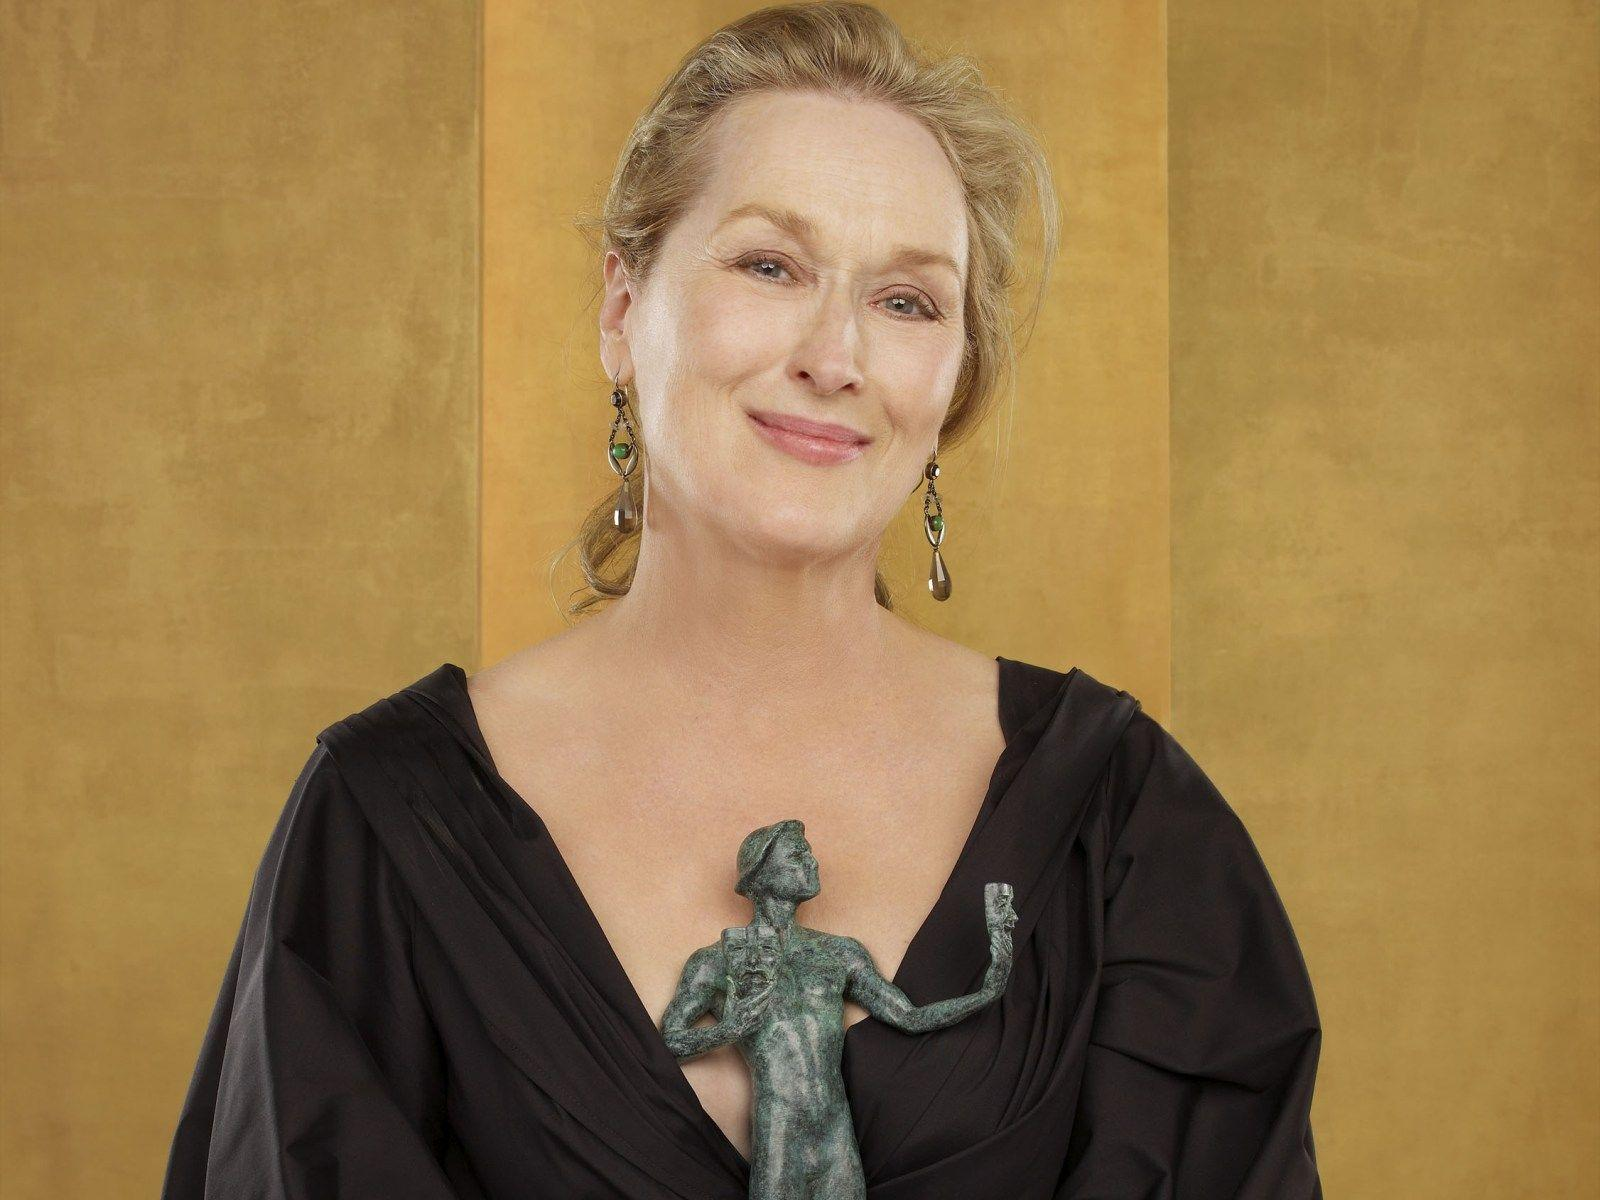 Meryl Streep Wallpapers 24180 | DFILES